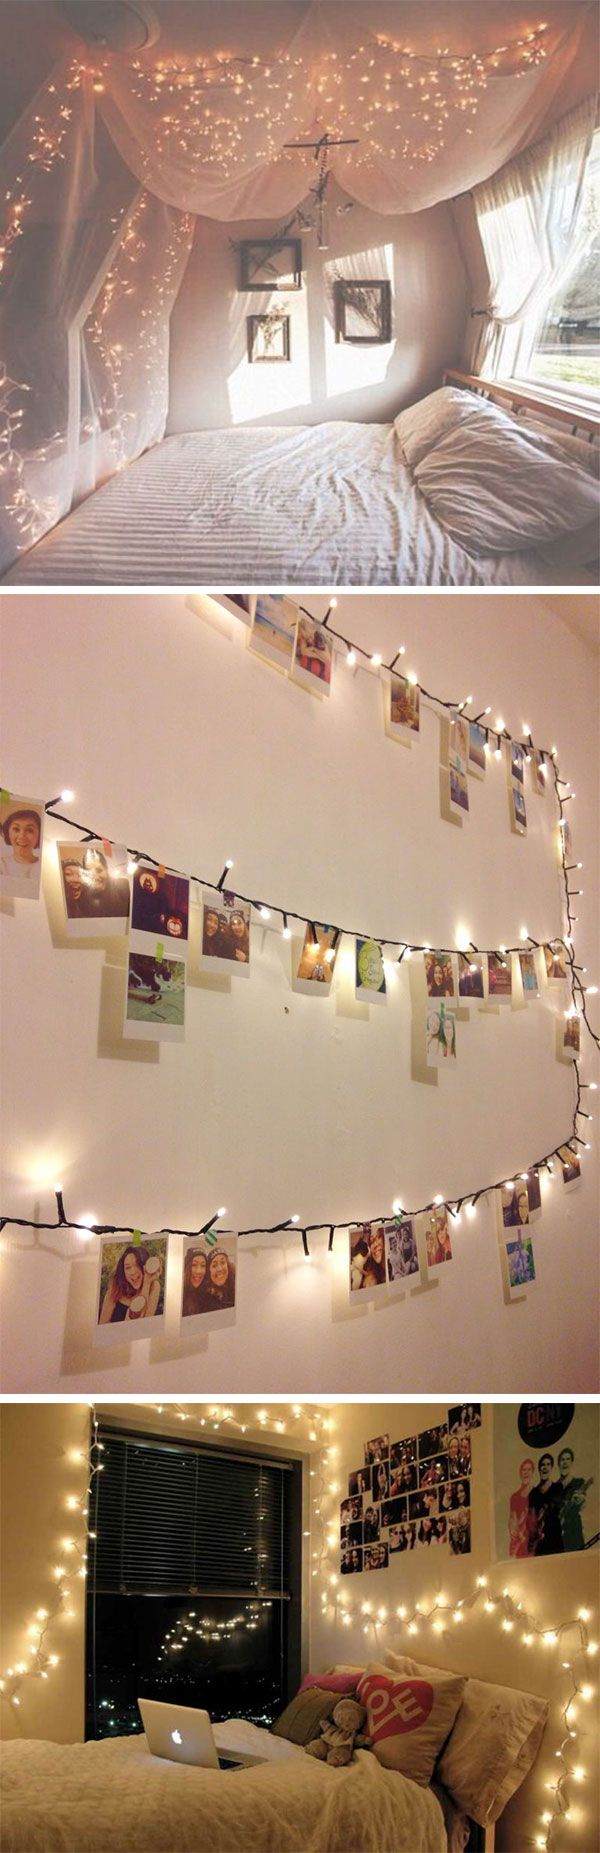 Best 25+ Room lights ideas on Pinterest | Bedroom fairy lights ...